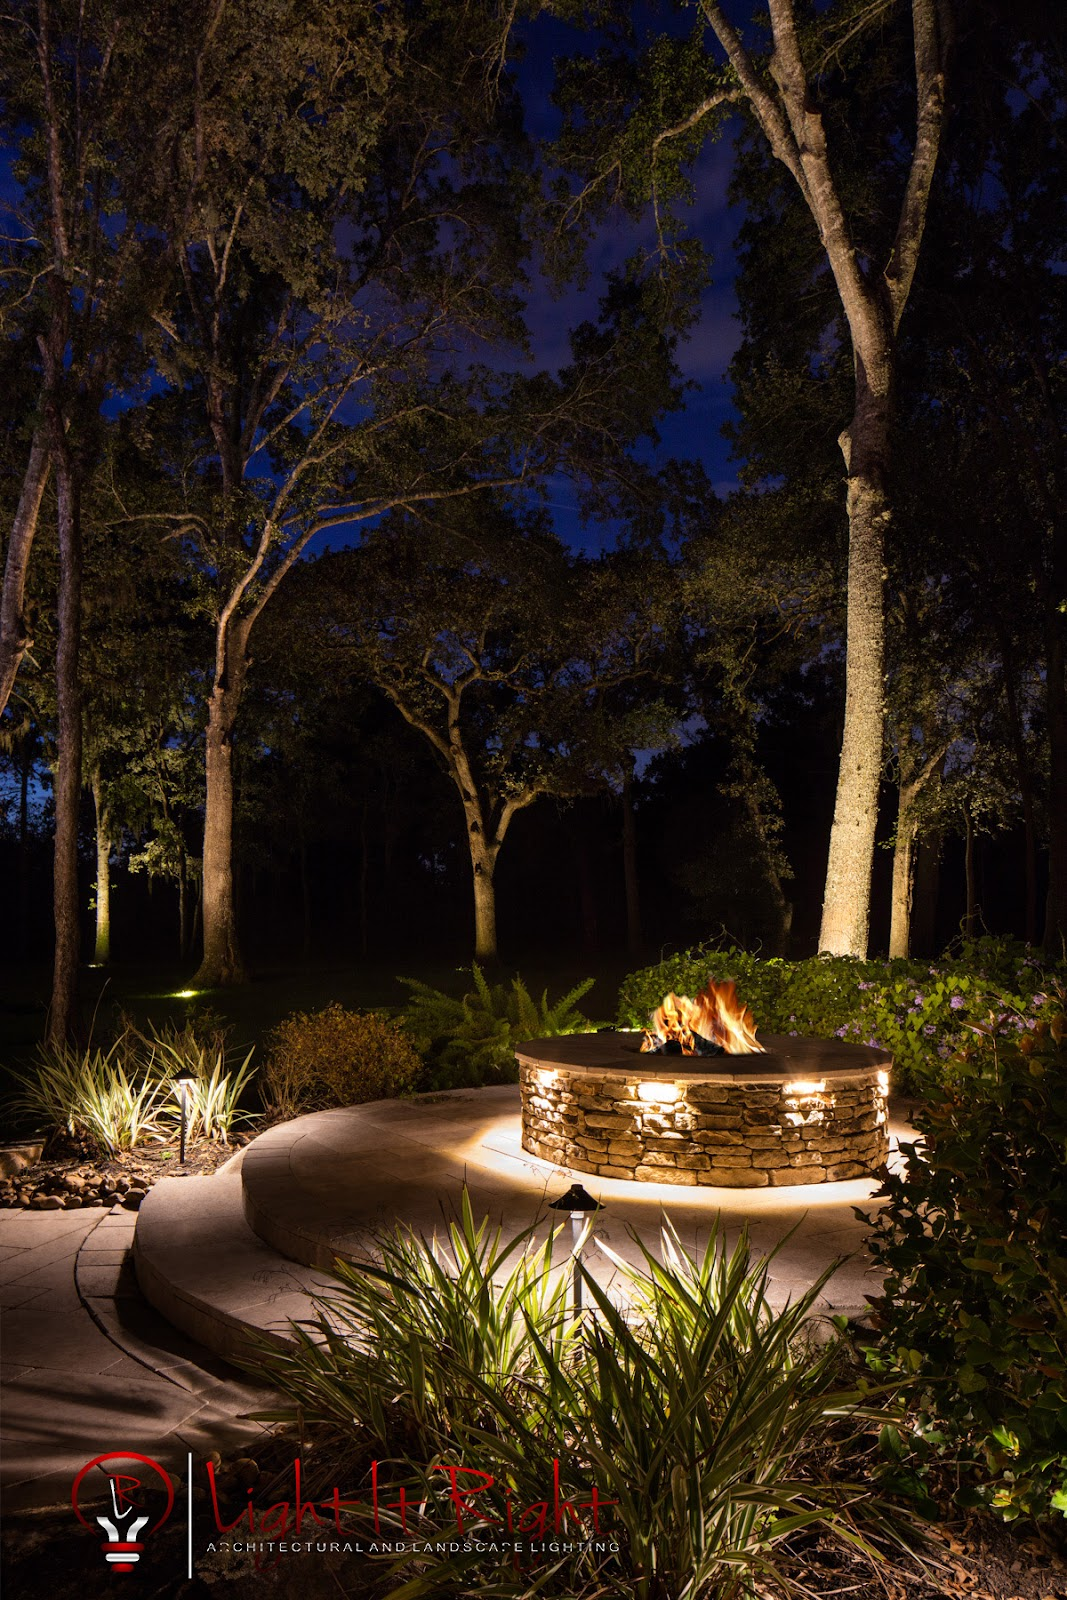 LED Fire Pit Lighting